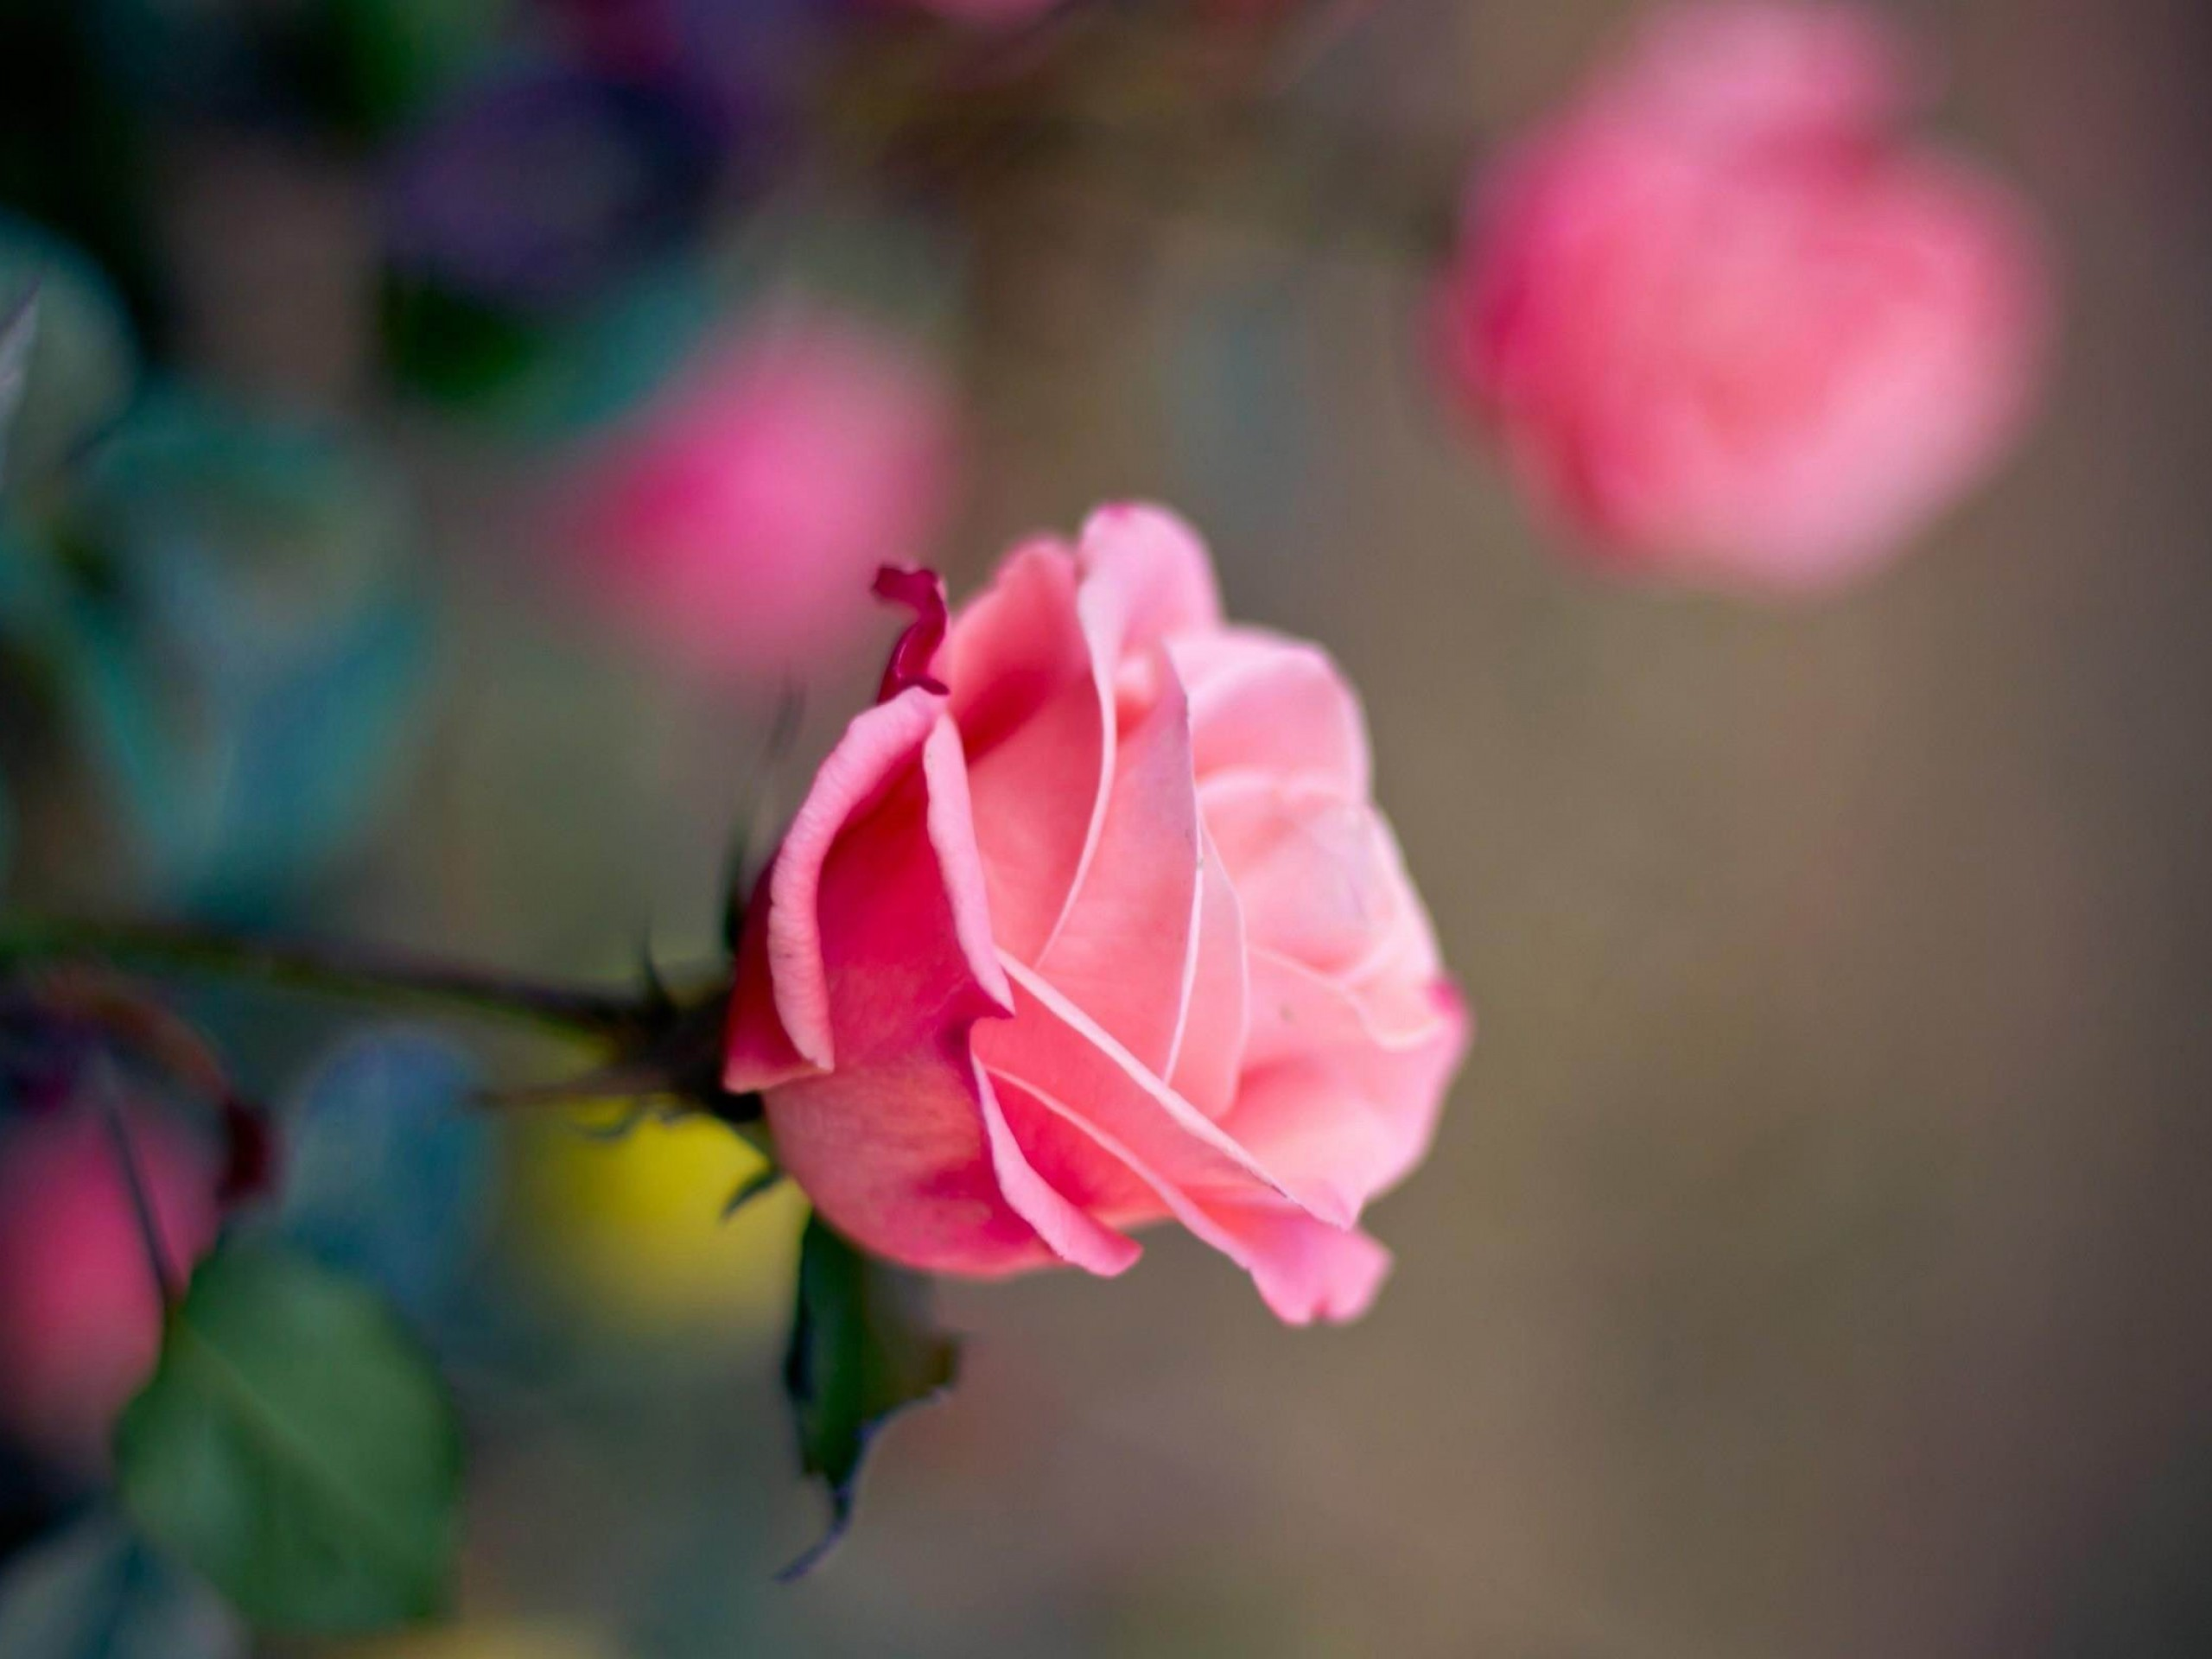 i love u pink rose view latest images free download